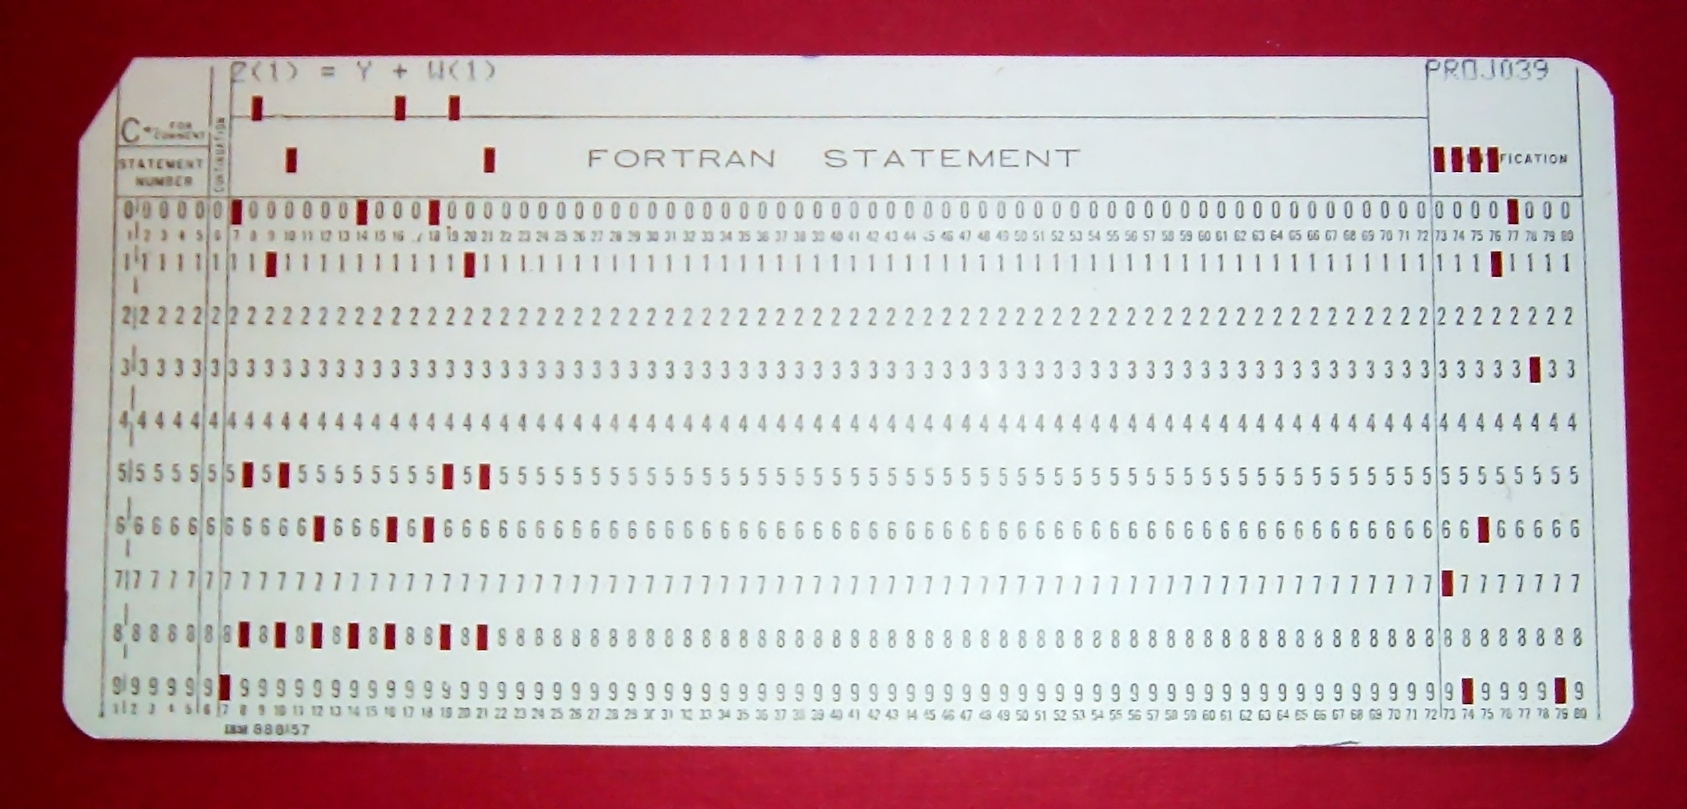 A punched card corresponding to a Fortran statement.